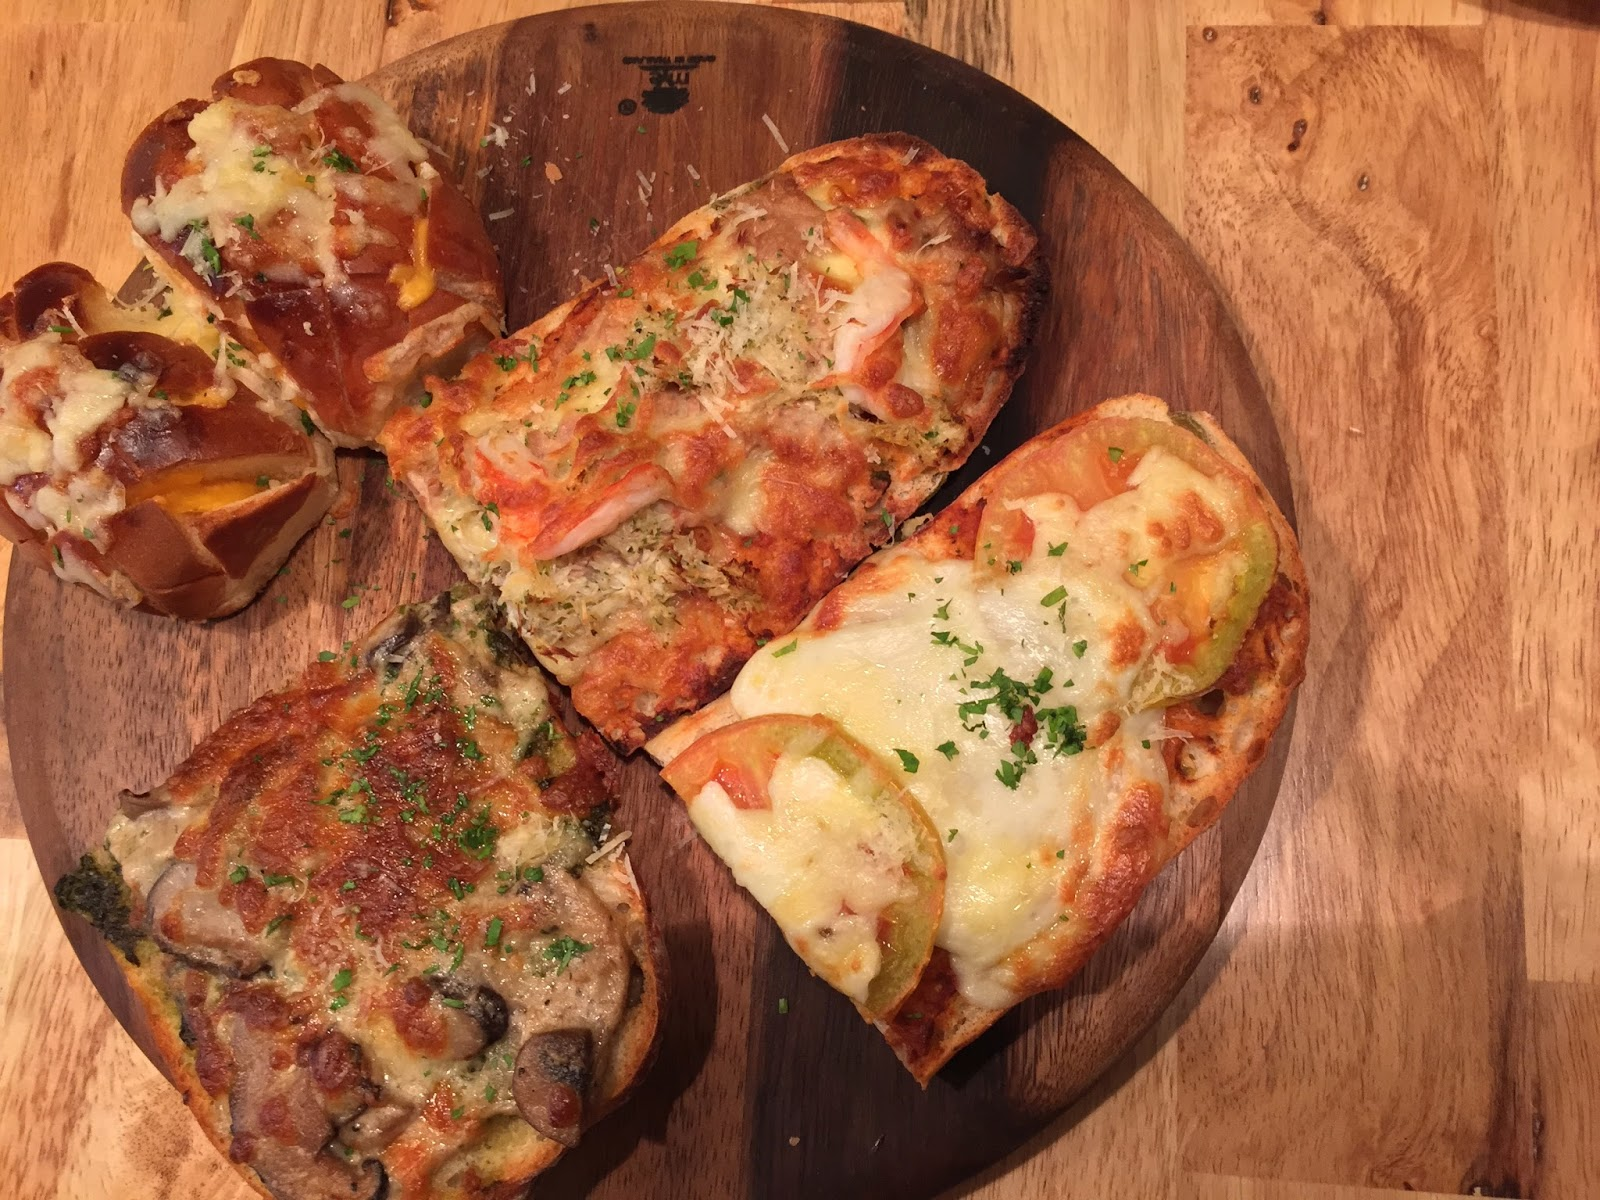 French Bread Pizza - MEDZS Bistro & Bar